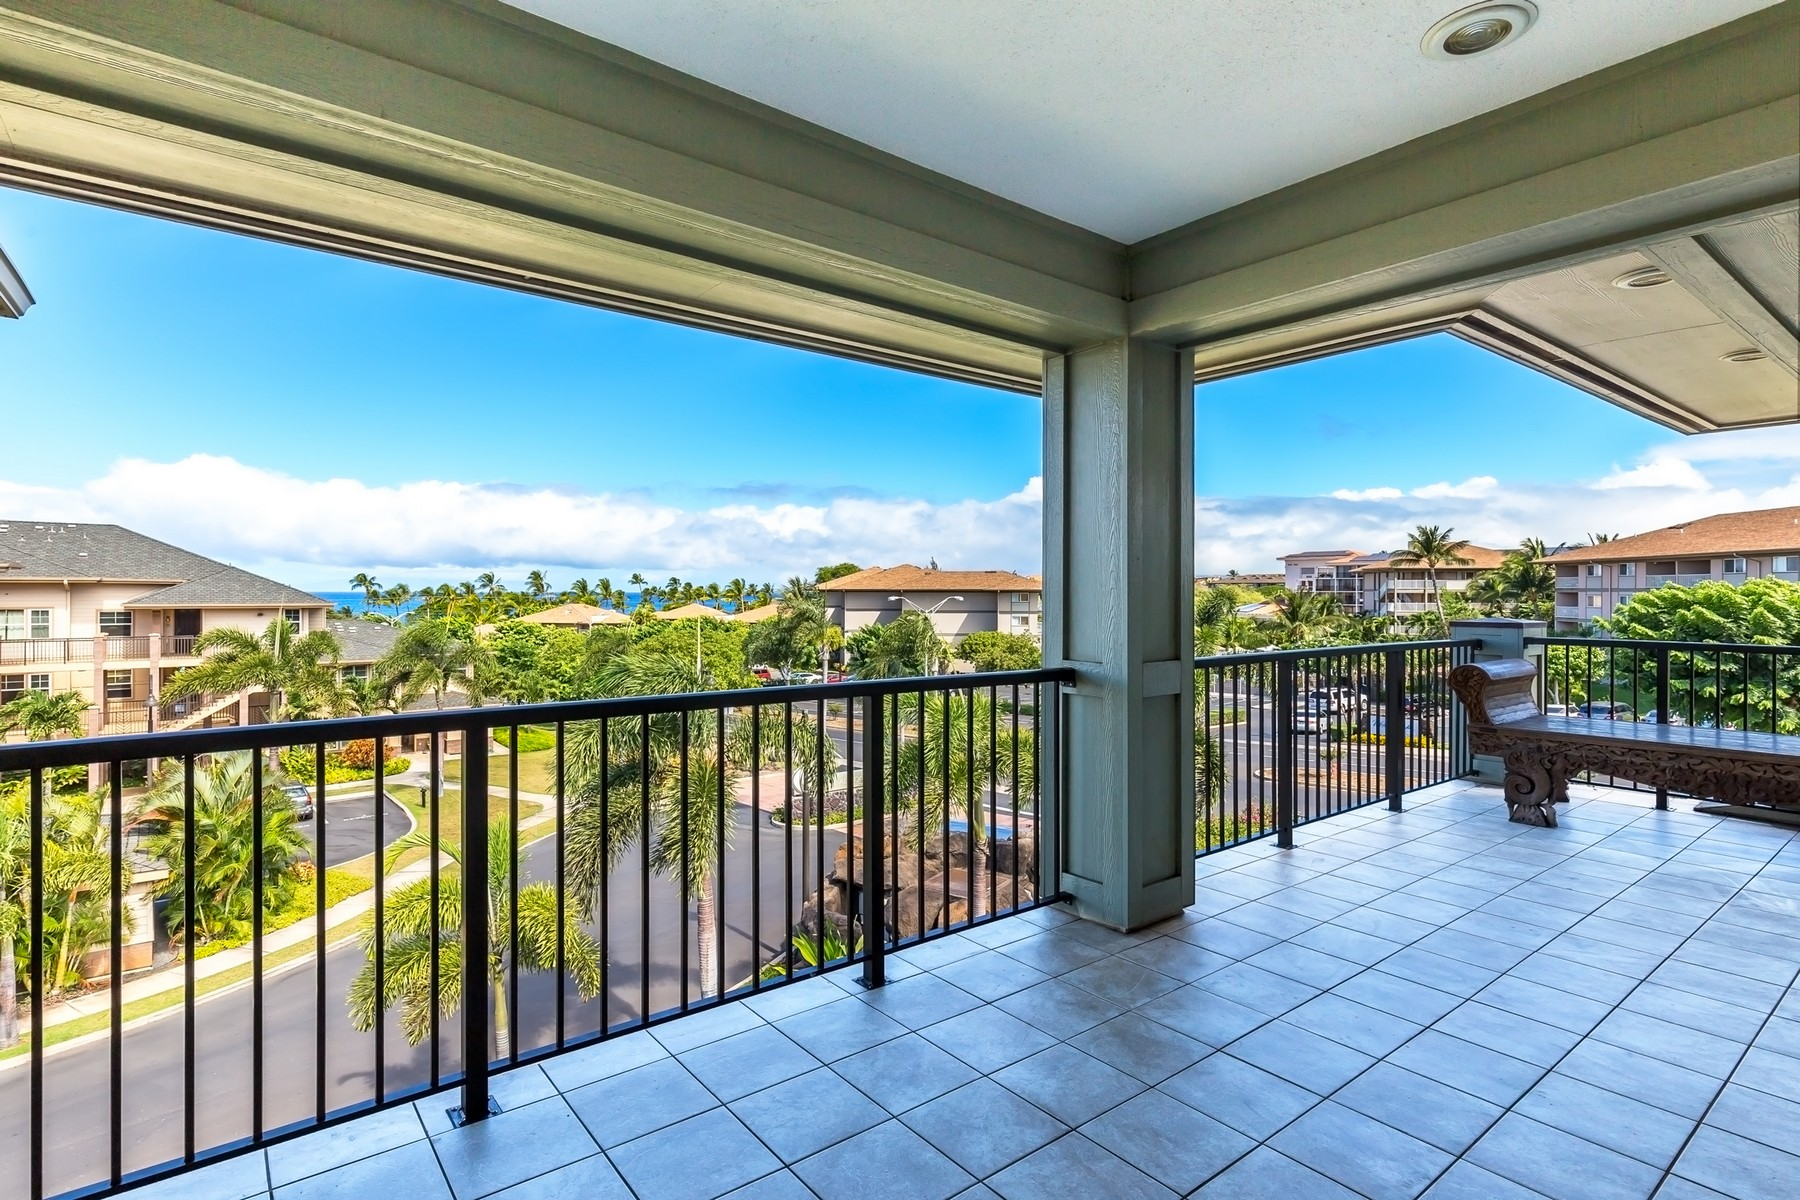 Condominium for Sale at Ke Alii Ocean Resort on Maui 10 Upena Lane, Ke Alii Ocean Villas D304 Kihei, Hawaii 96753 United States